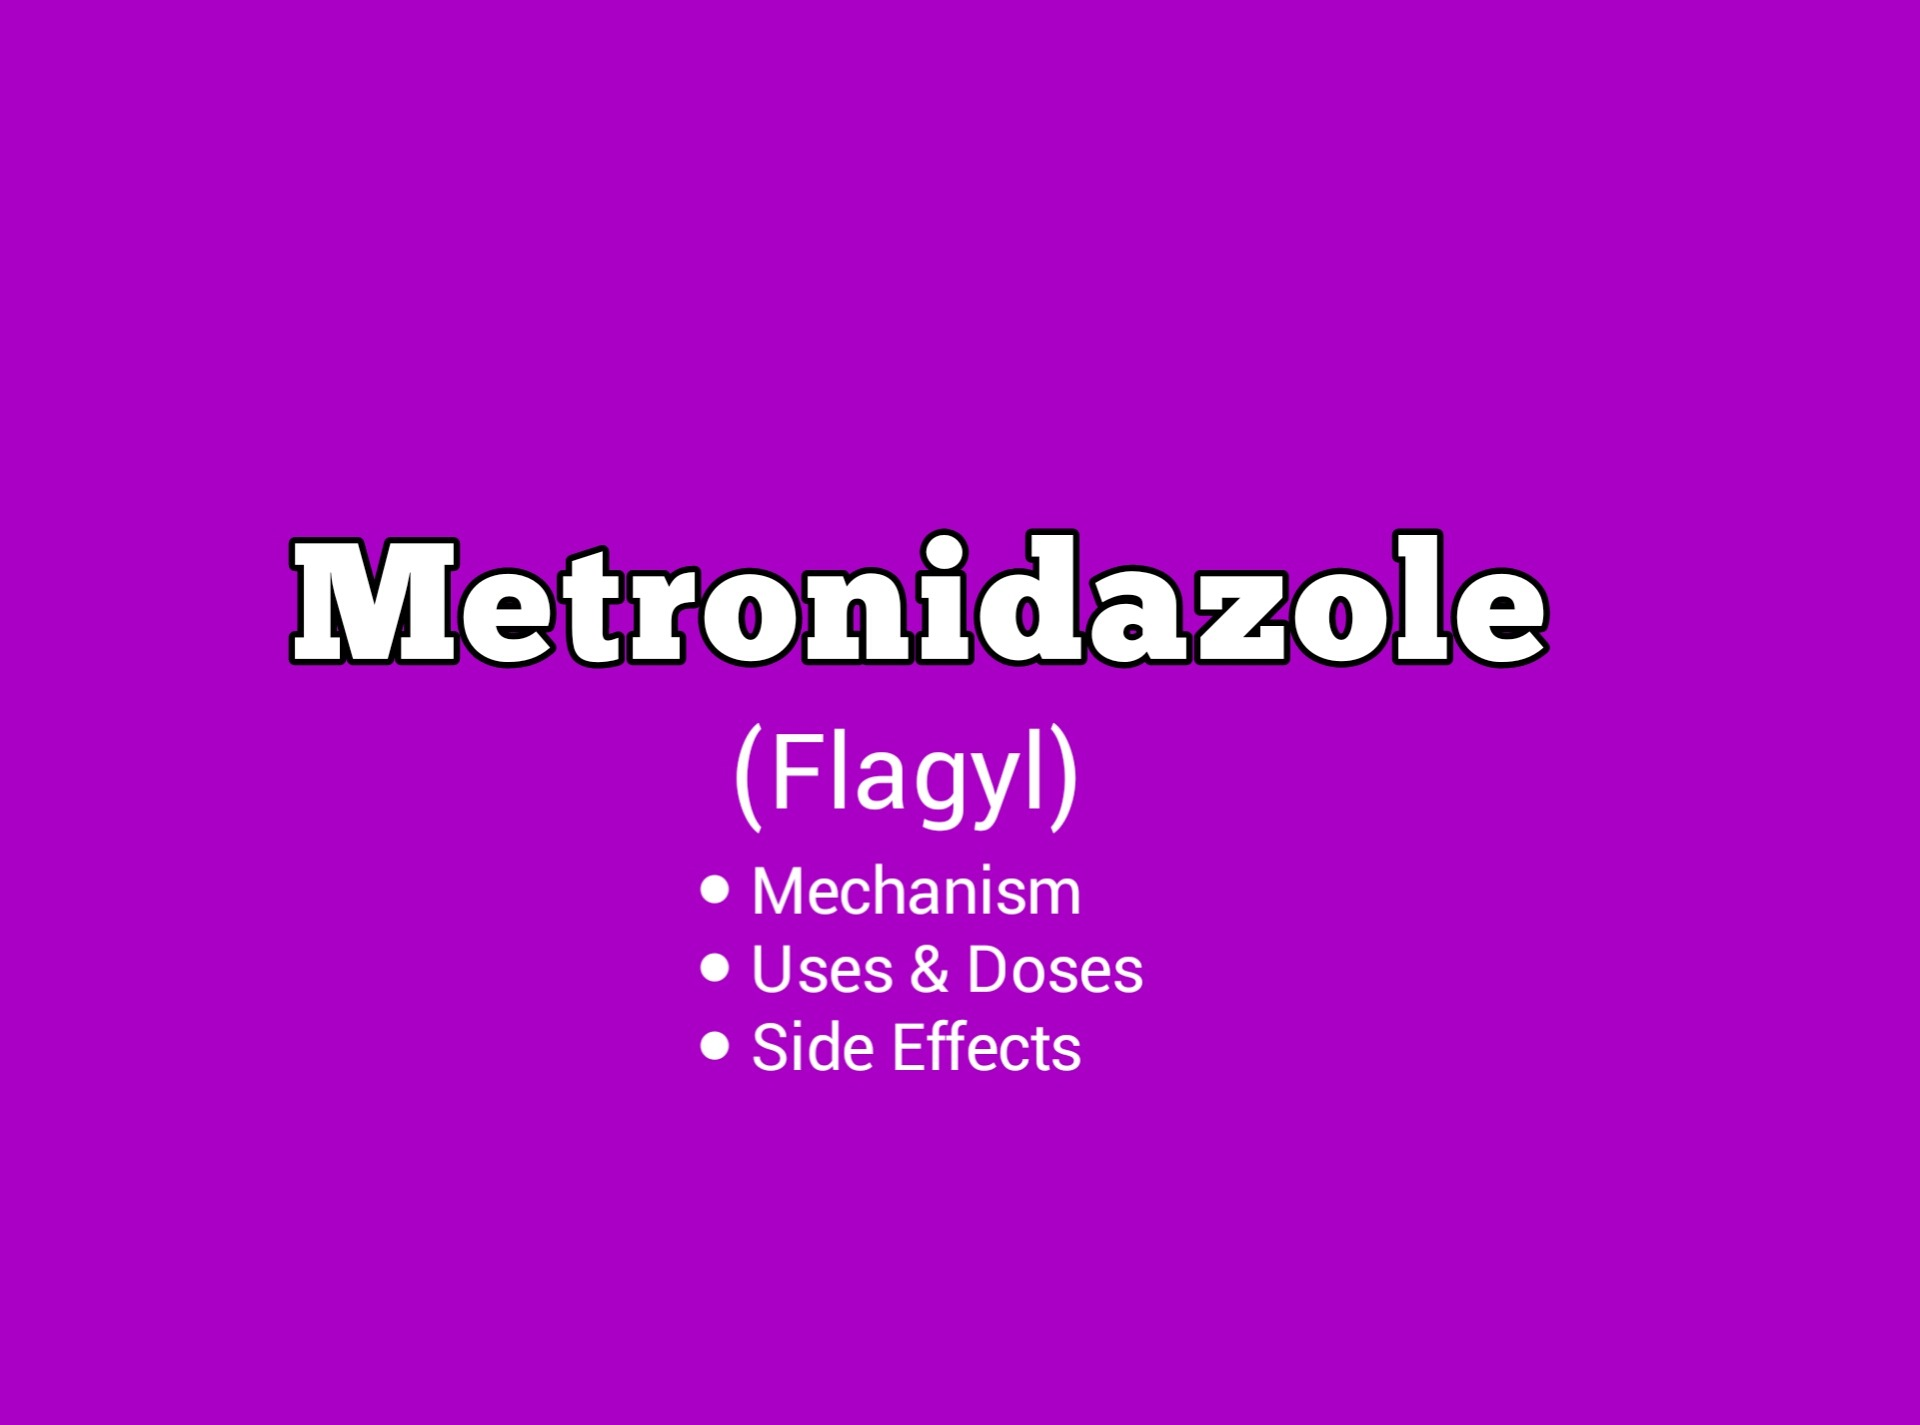 Important information about Metronidazole